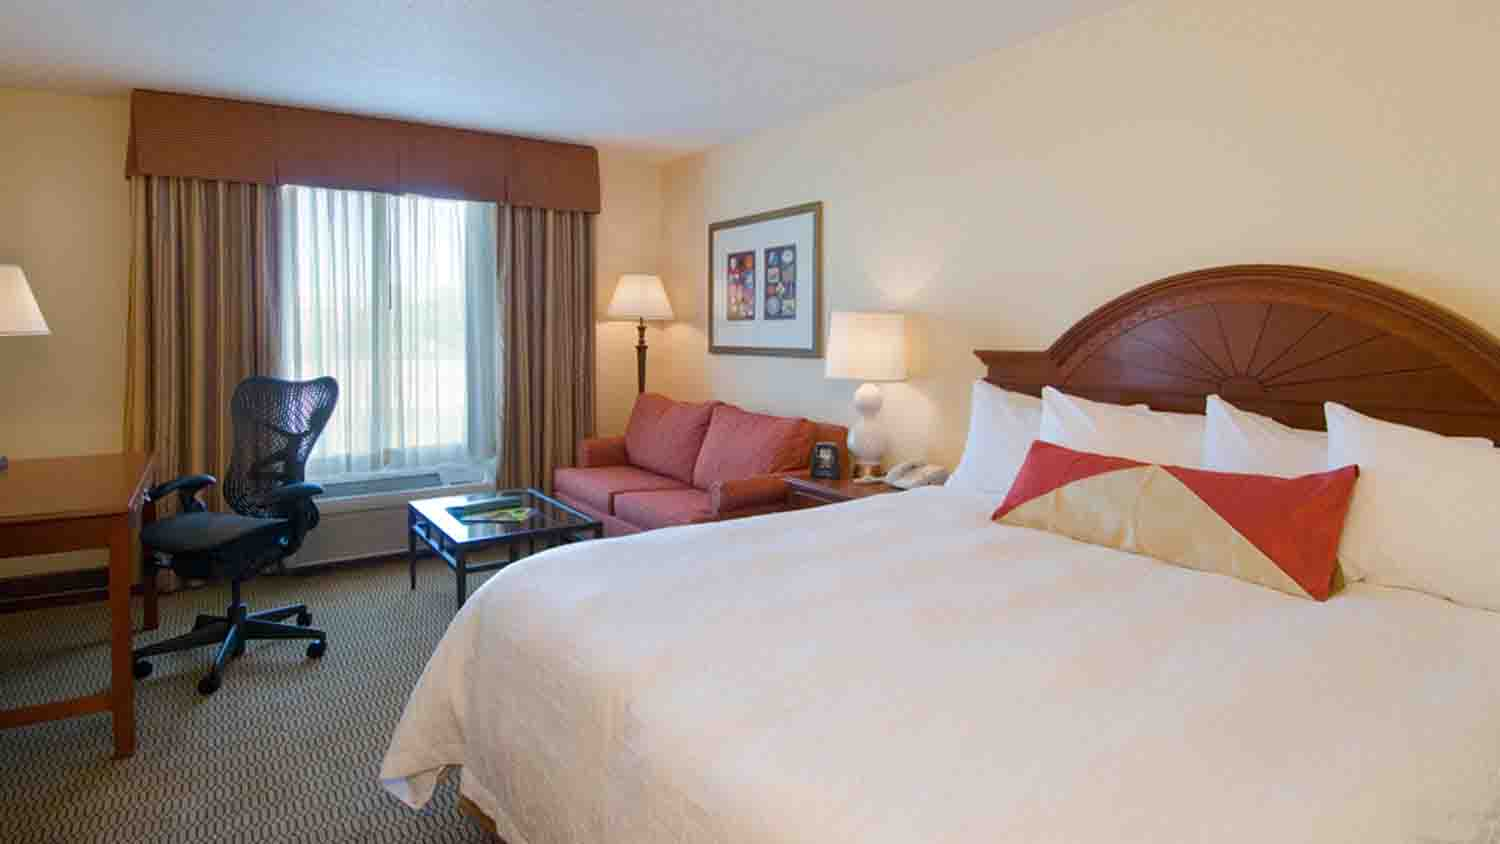 Hilton Garden Inn Indianapolis Northeast/Fishers 4